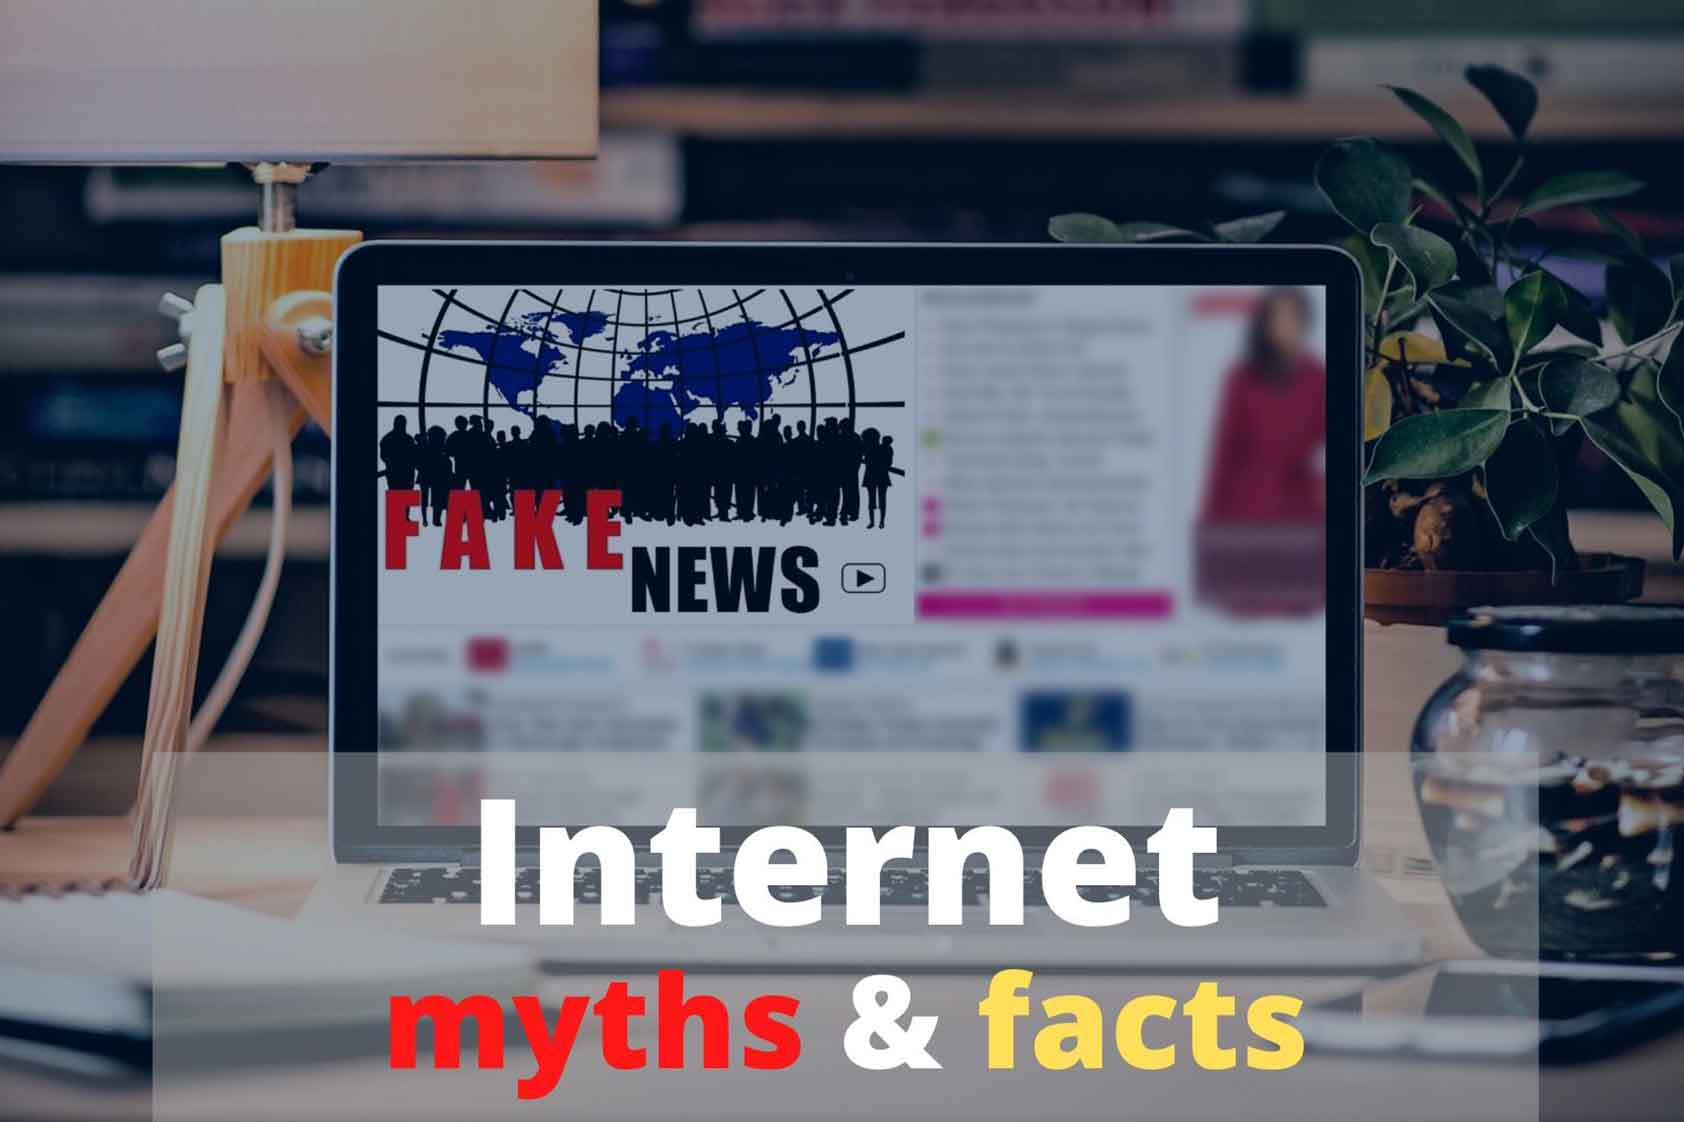 Myths about the Internet in the context of COVID-19